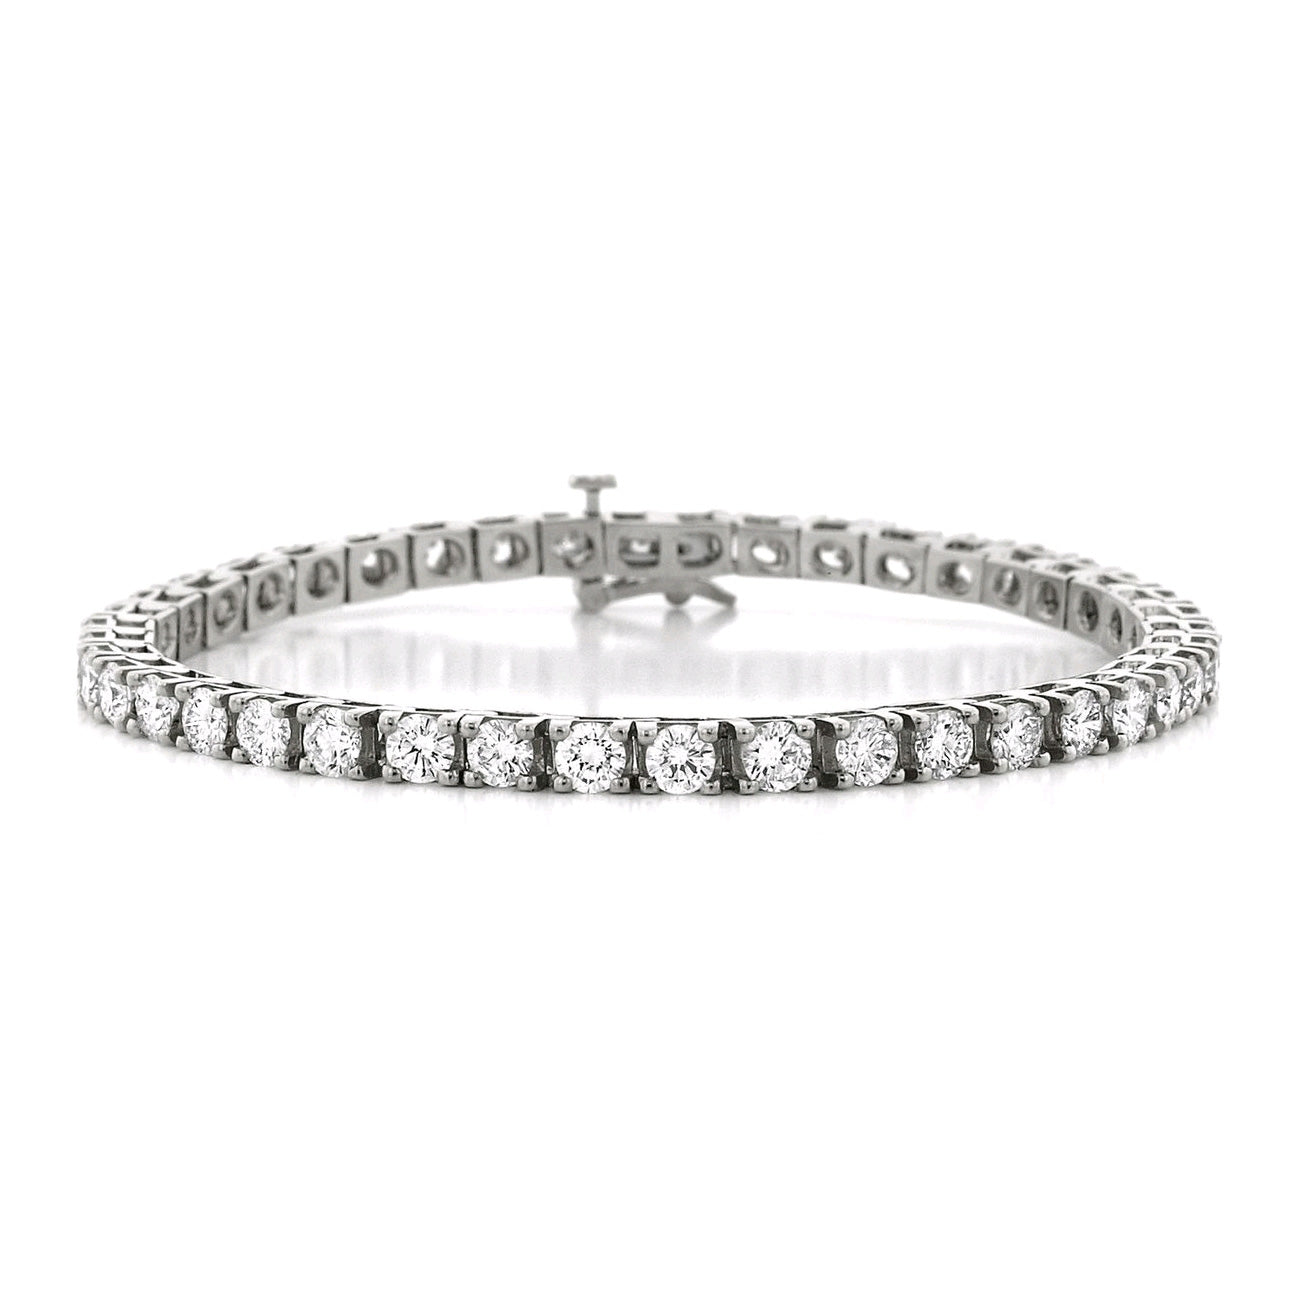 Four Prong Diamond Tennis Bracelet, 8 Carats, 14K White Gold